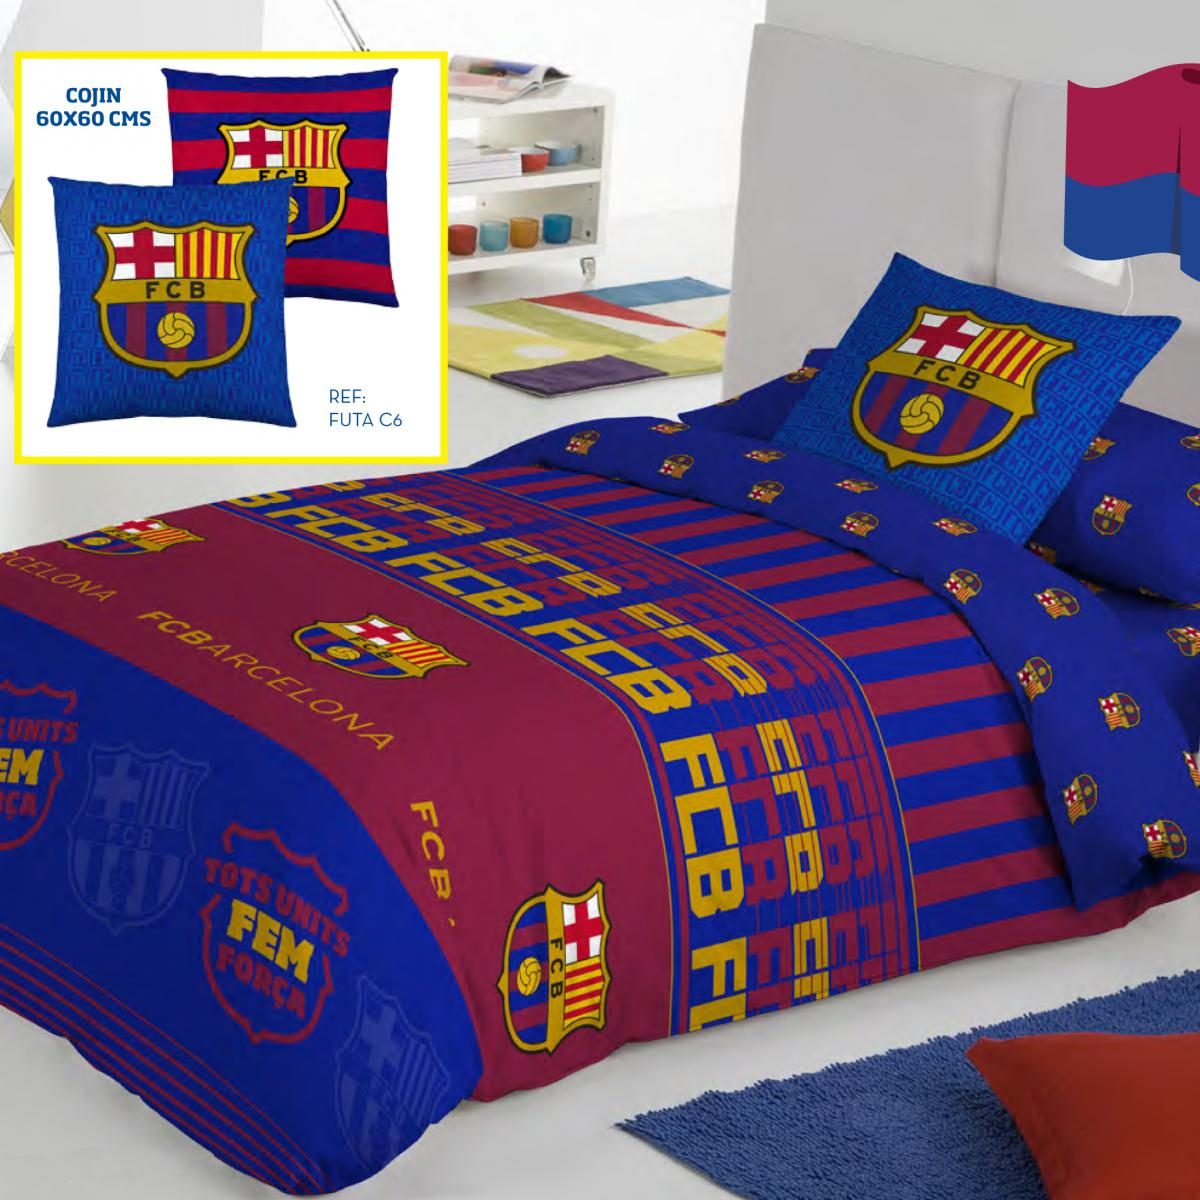 Funda n rdica for a fc barcelona - Fundas nordicas de futbol ...